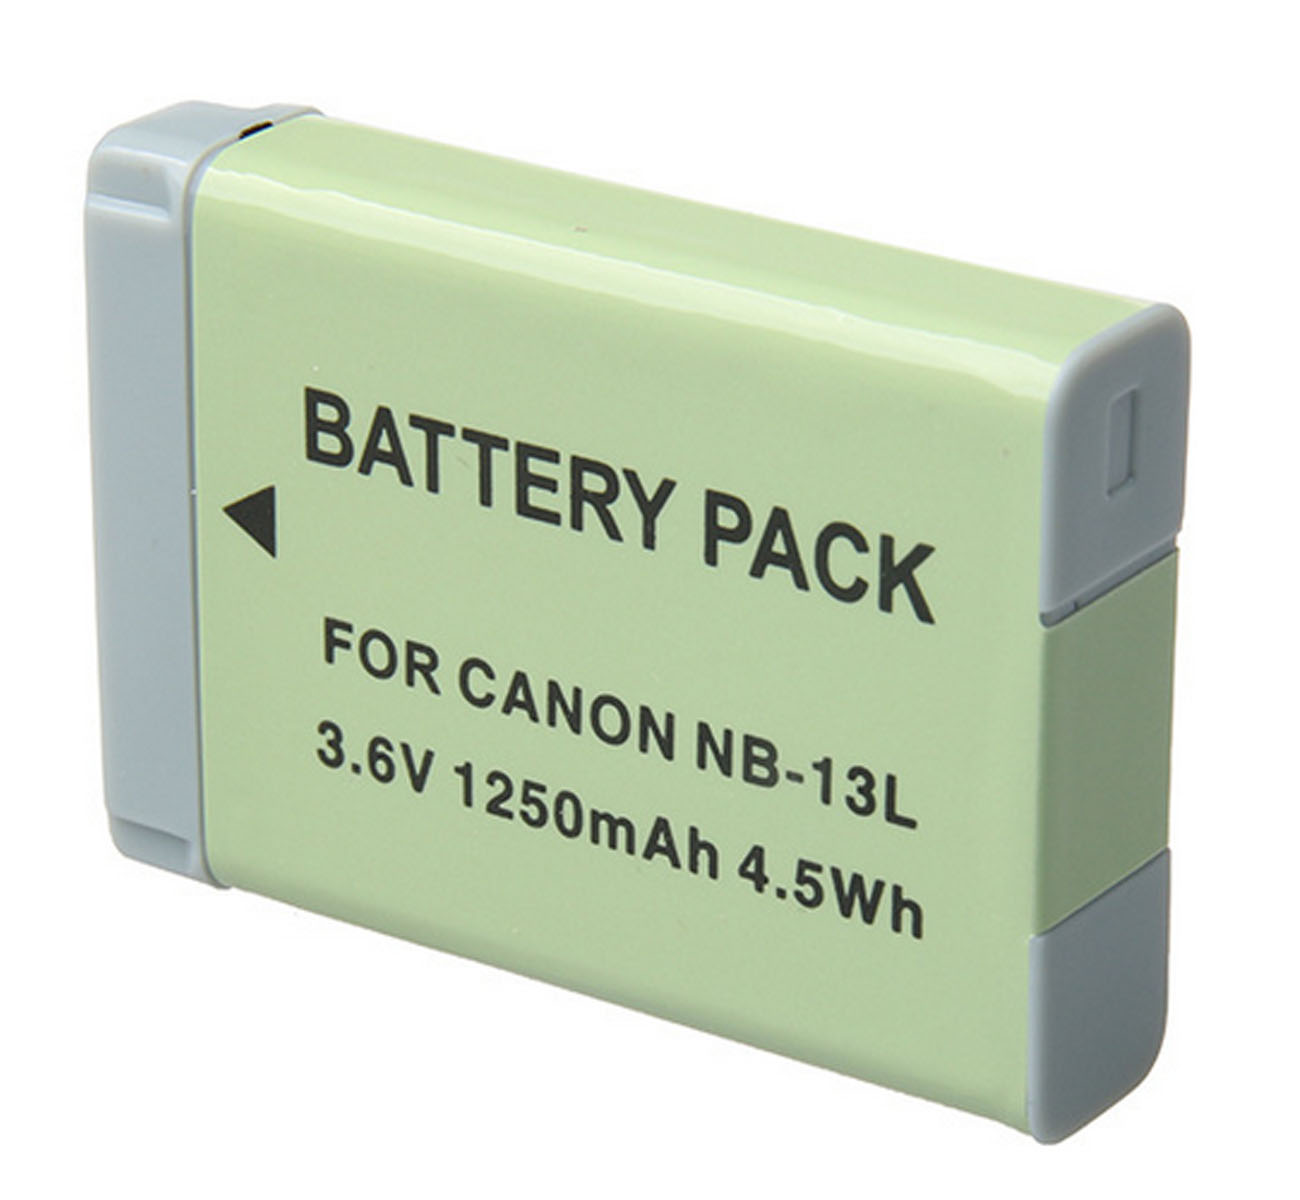 Faithful Battery Pack For Canon Nb-13l, Nb13l Rechargeable Lithium-ion Skilful Manufacture